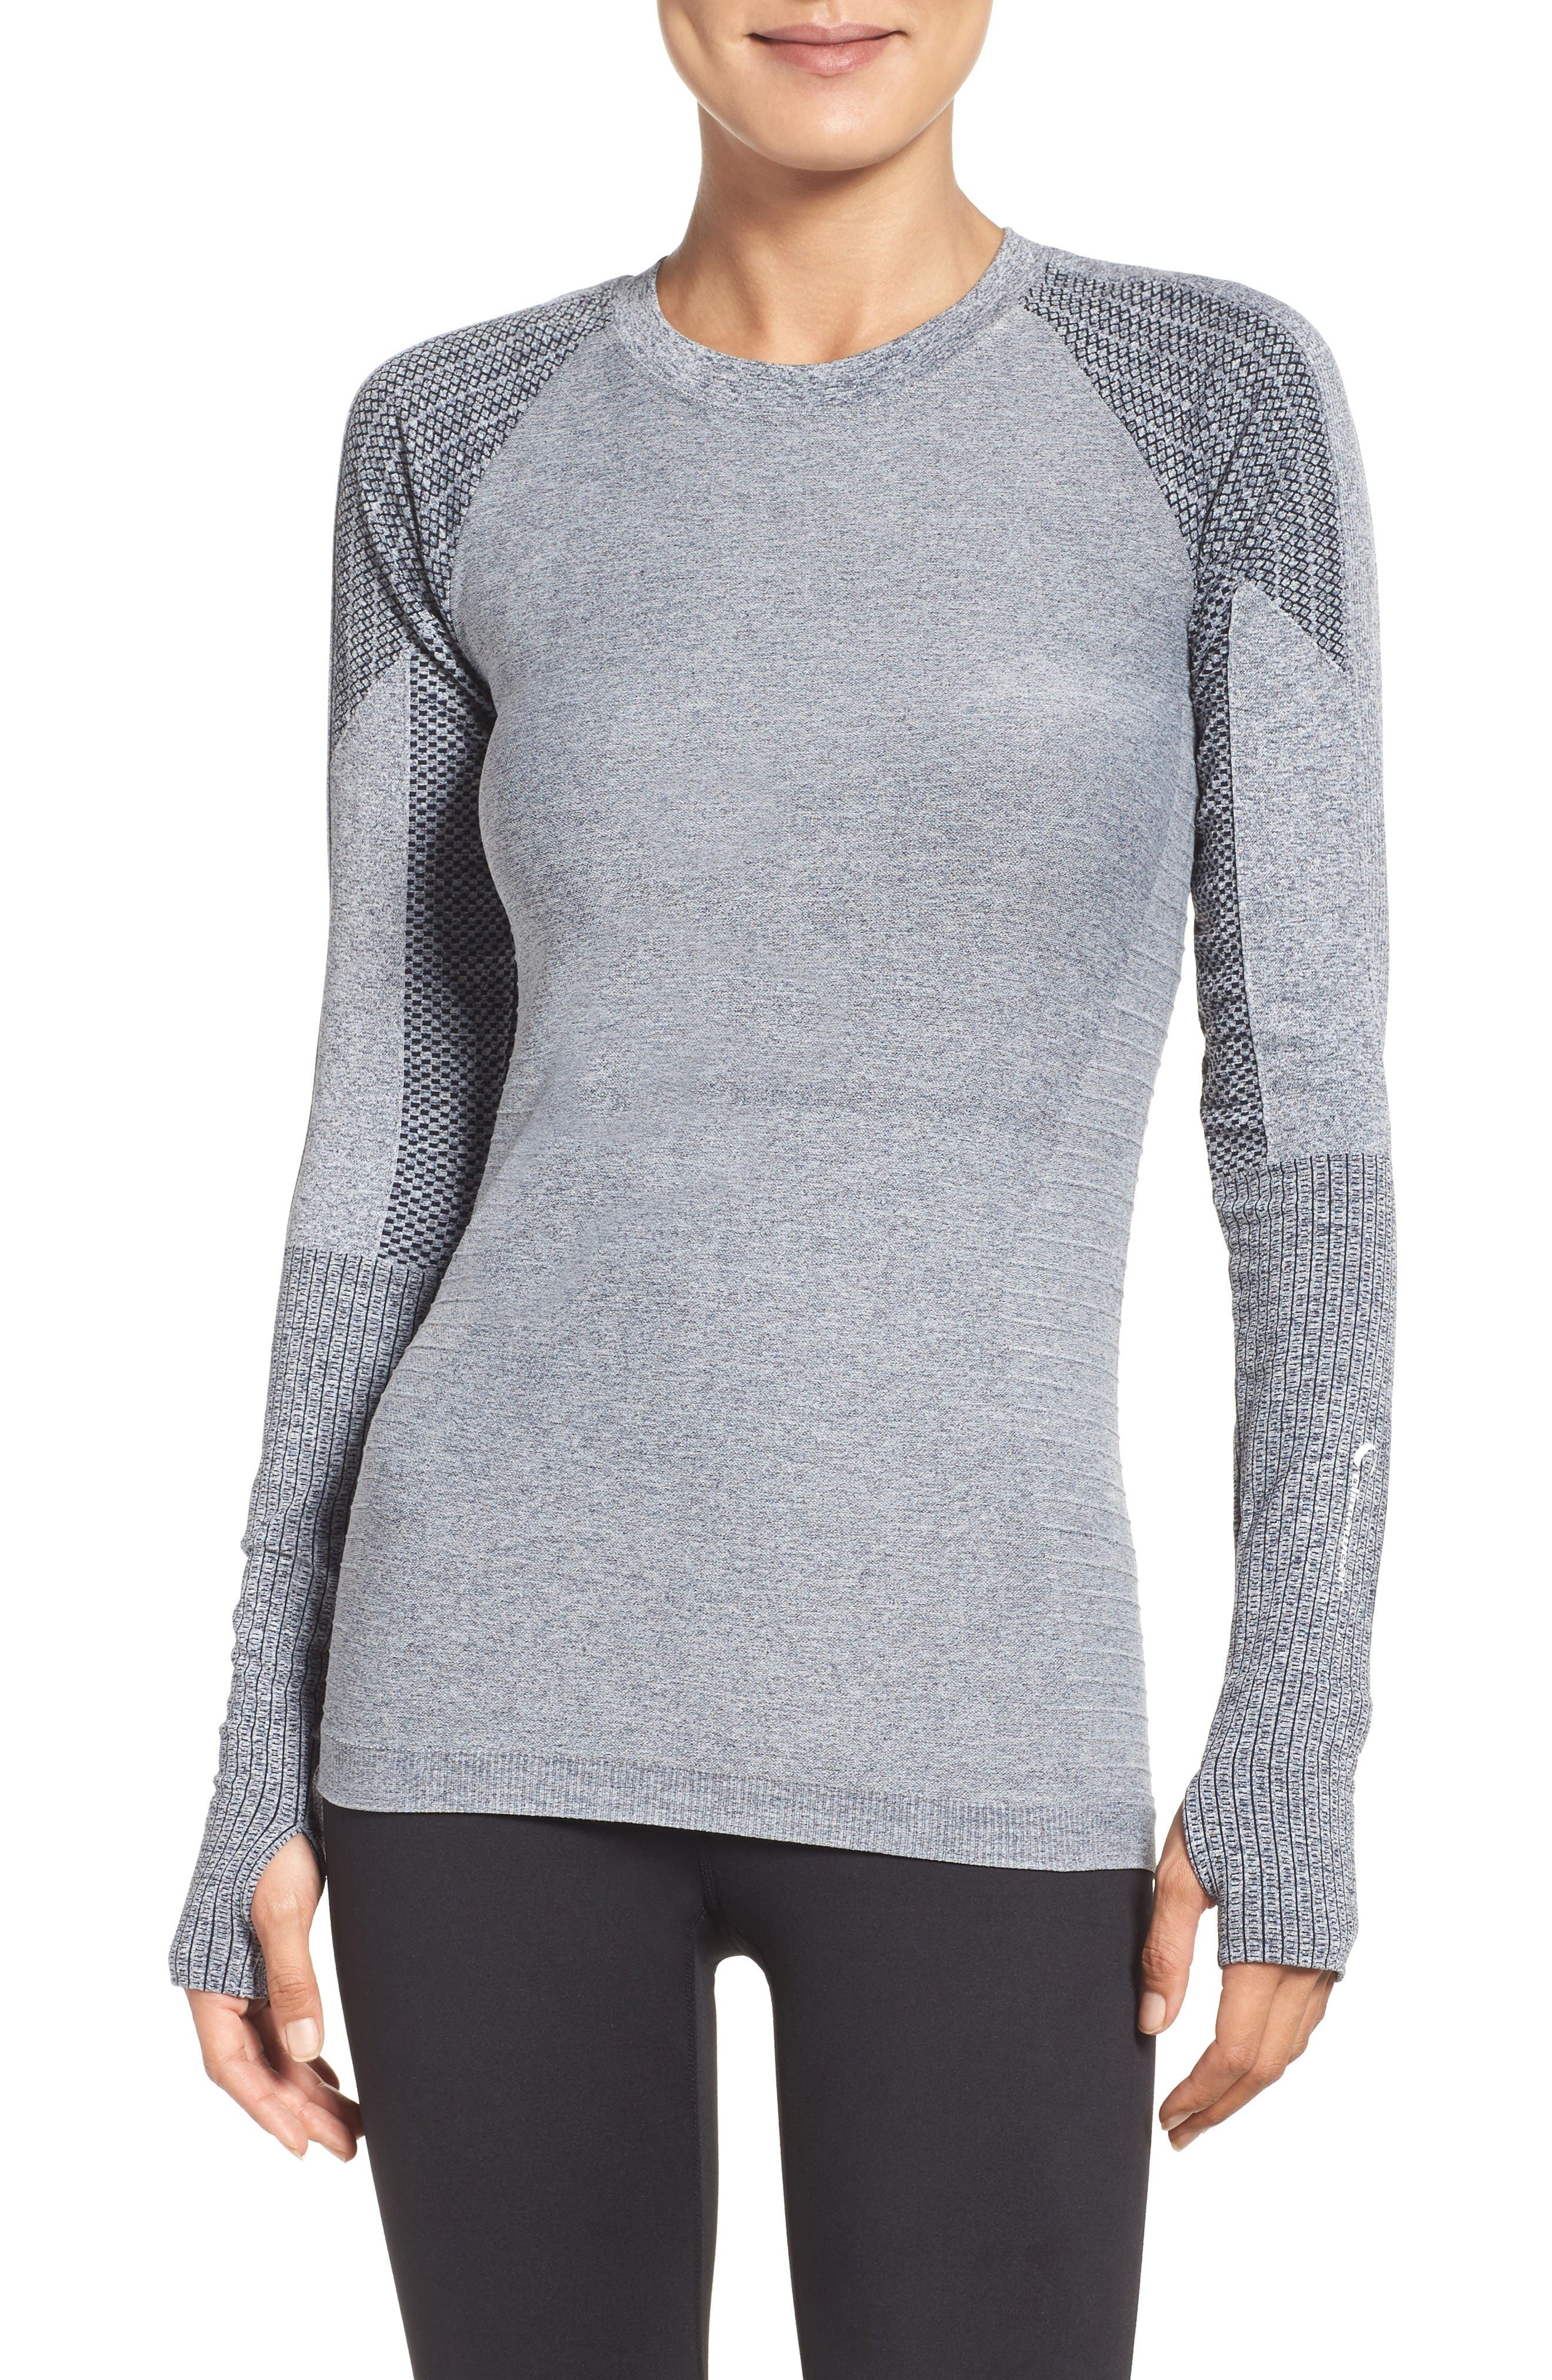 Dynamic Running Top,                             Main thumbnail 1, color,                             Grey/ White Melange